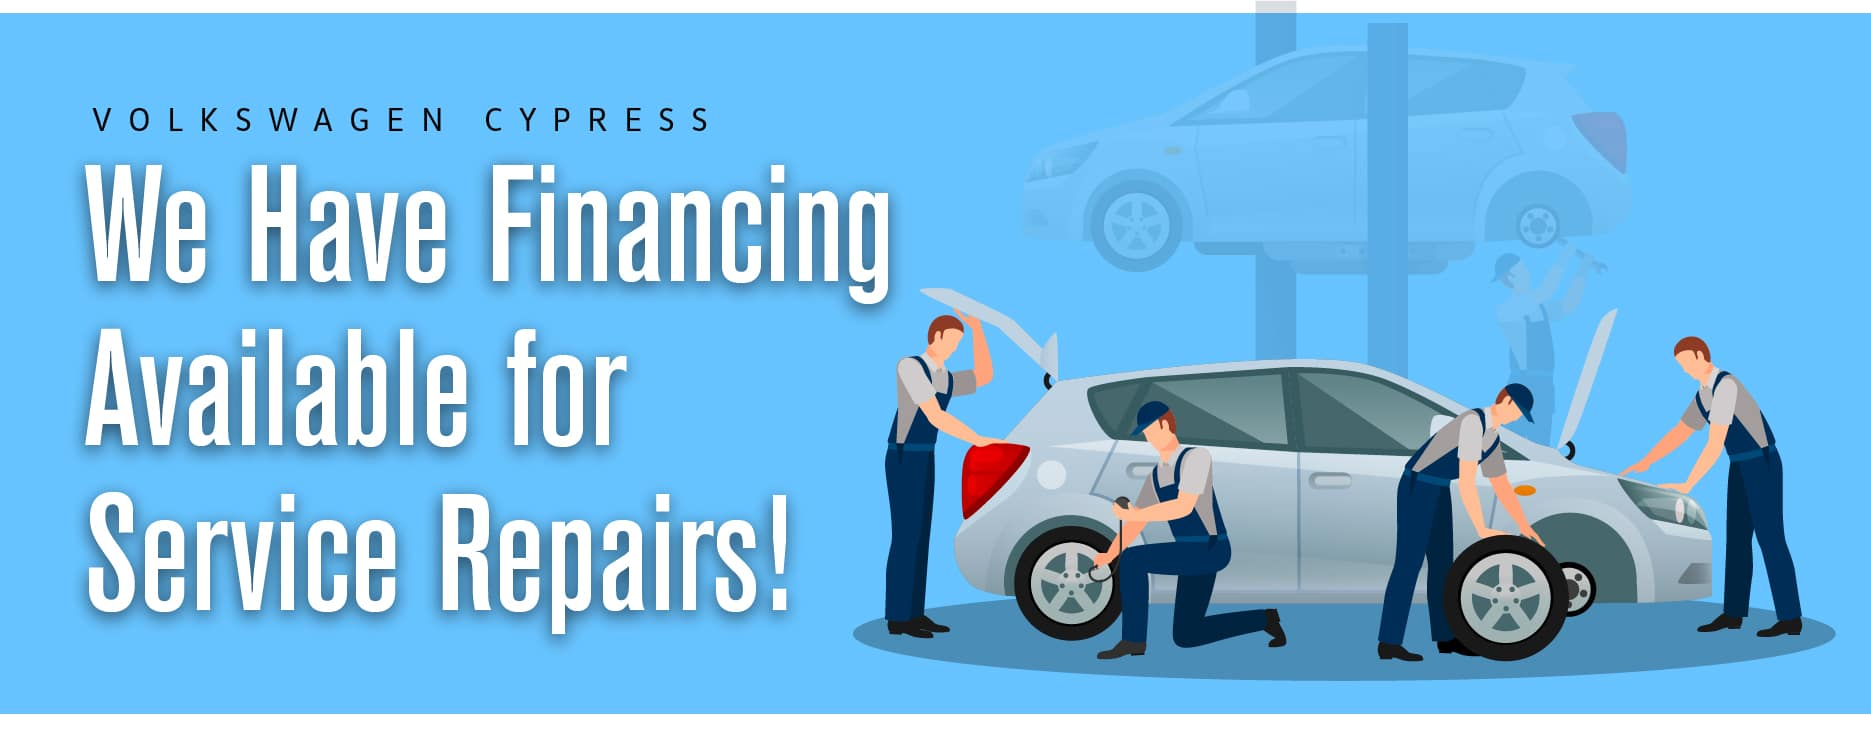 Volkswagen Cypress offers financing for service repairs!